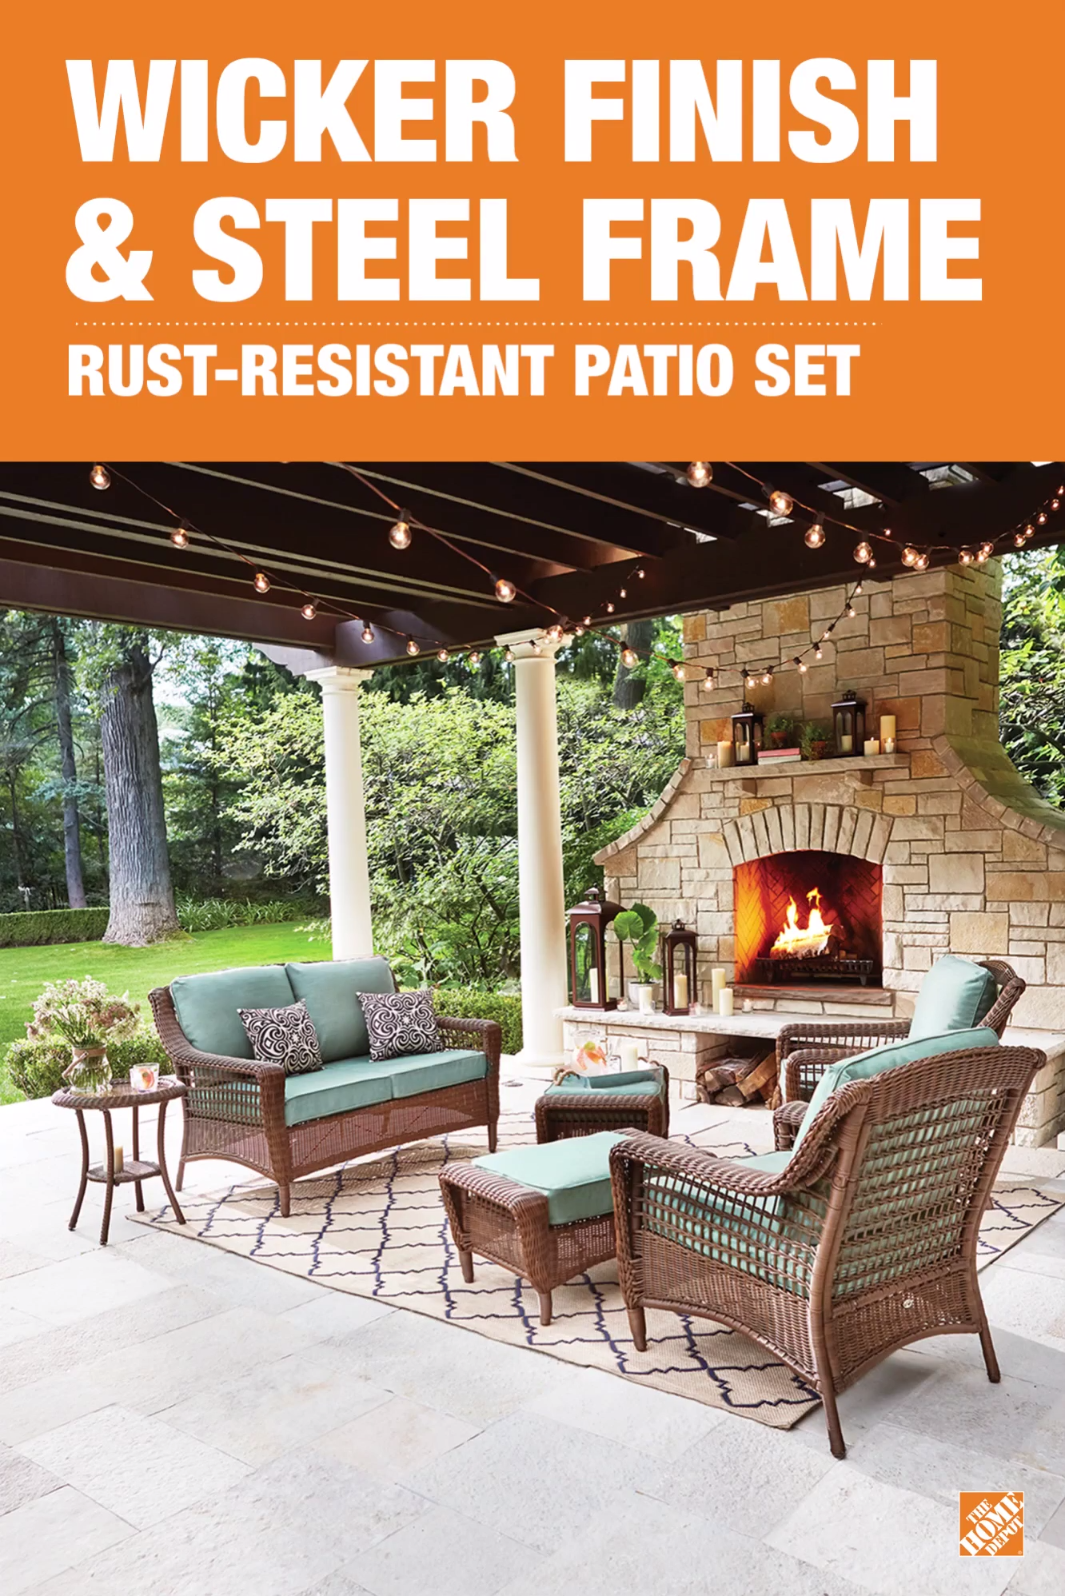 Spring Haven Brown All Weather Wicker Patio Sofa Under The Table Collection Set Creates Perfect